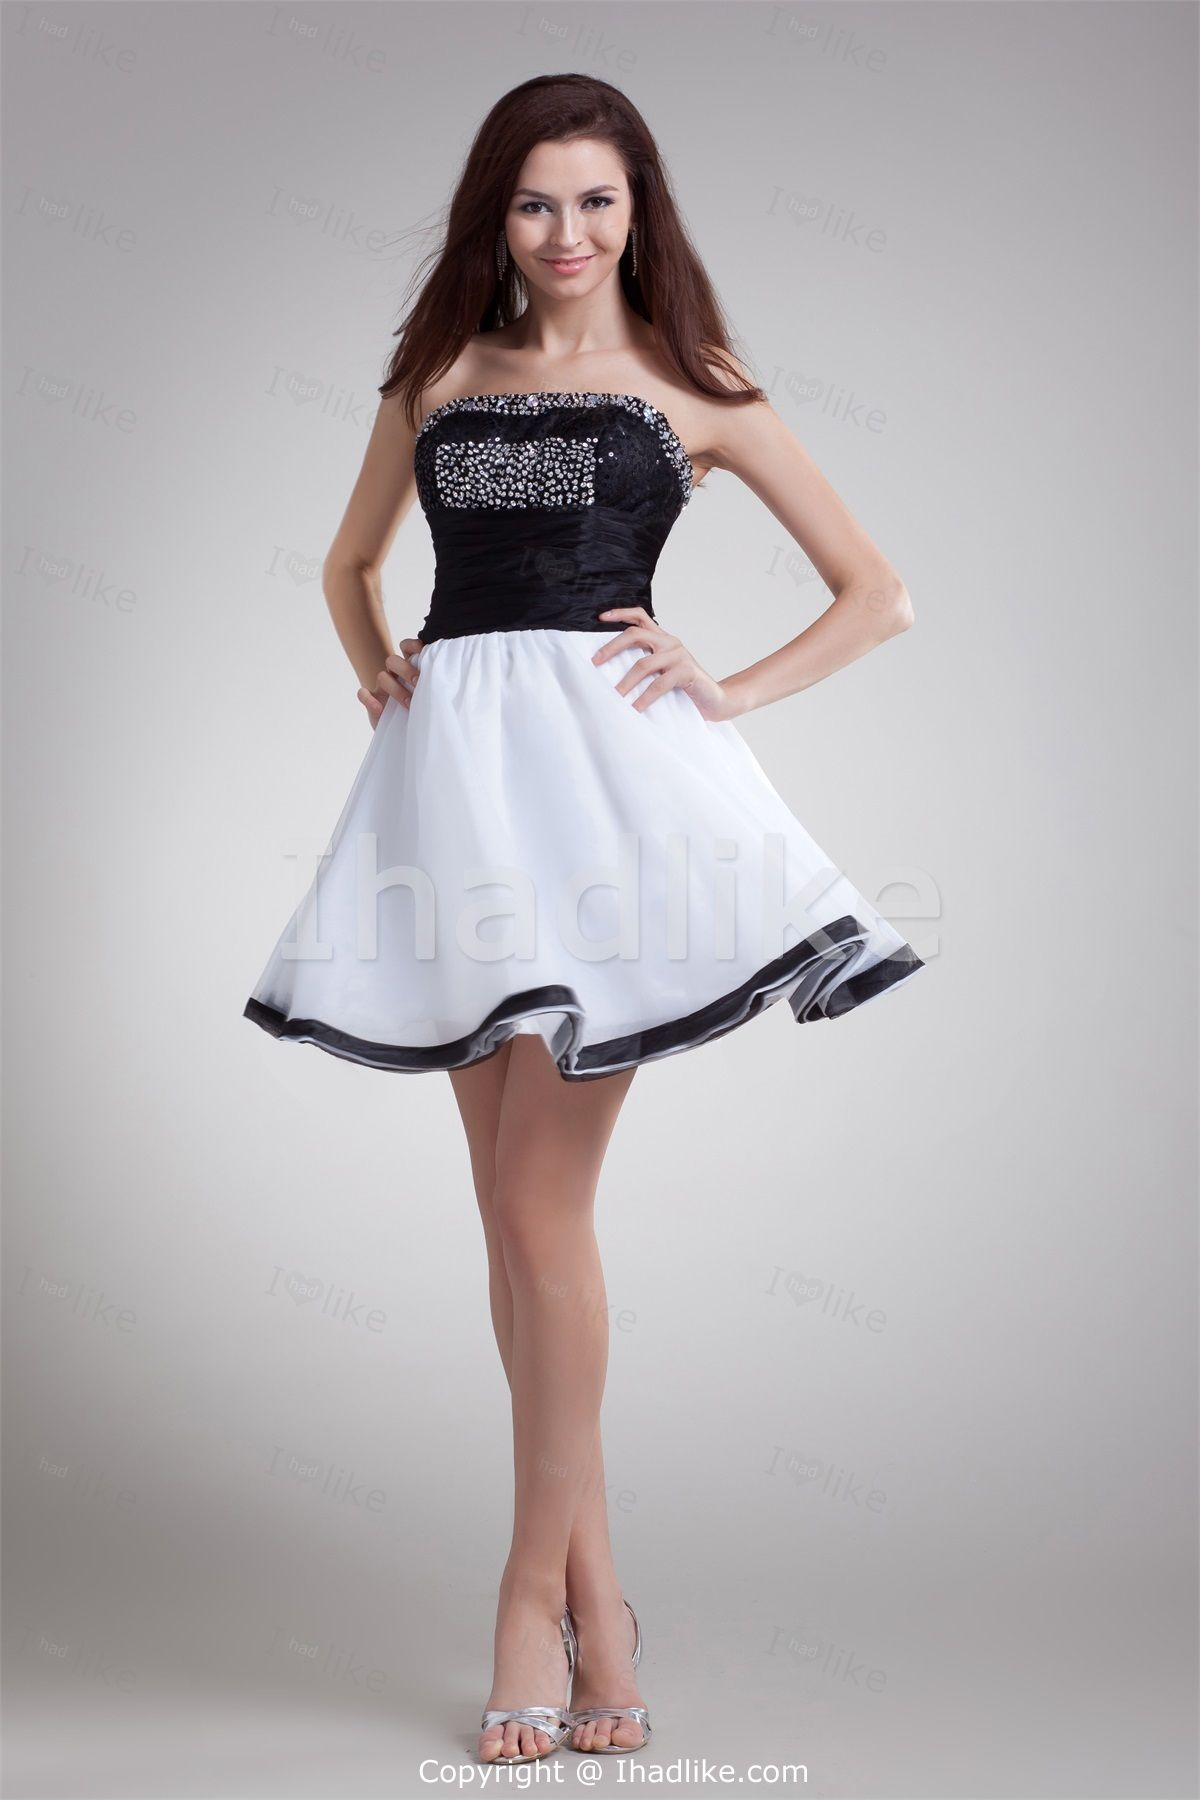 Get Suitable Dress with Black Cocktail Dresses : Black White Short Mini Organza Strapless Cocktail Dress1